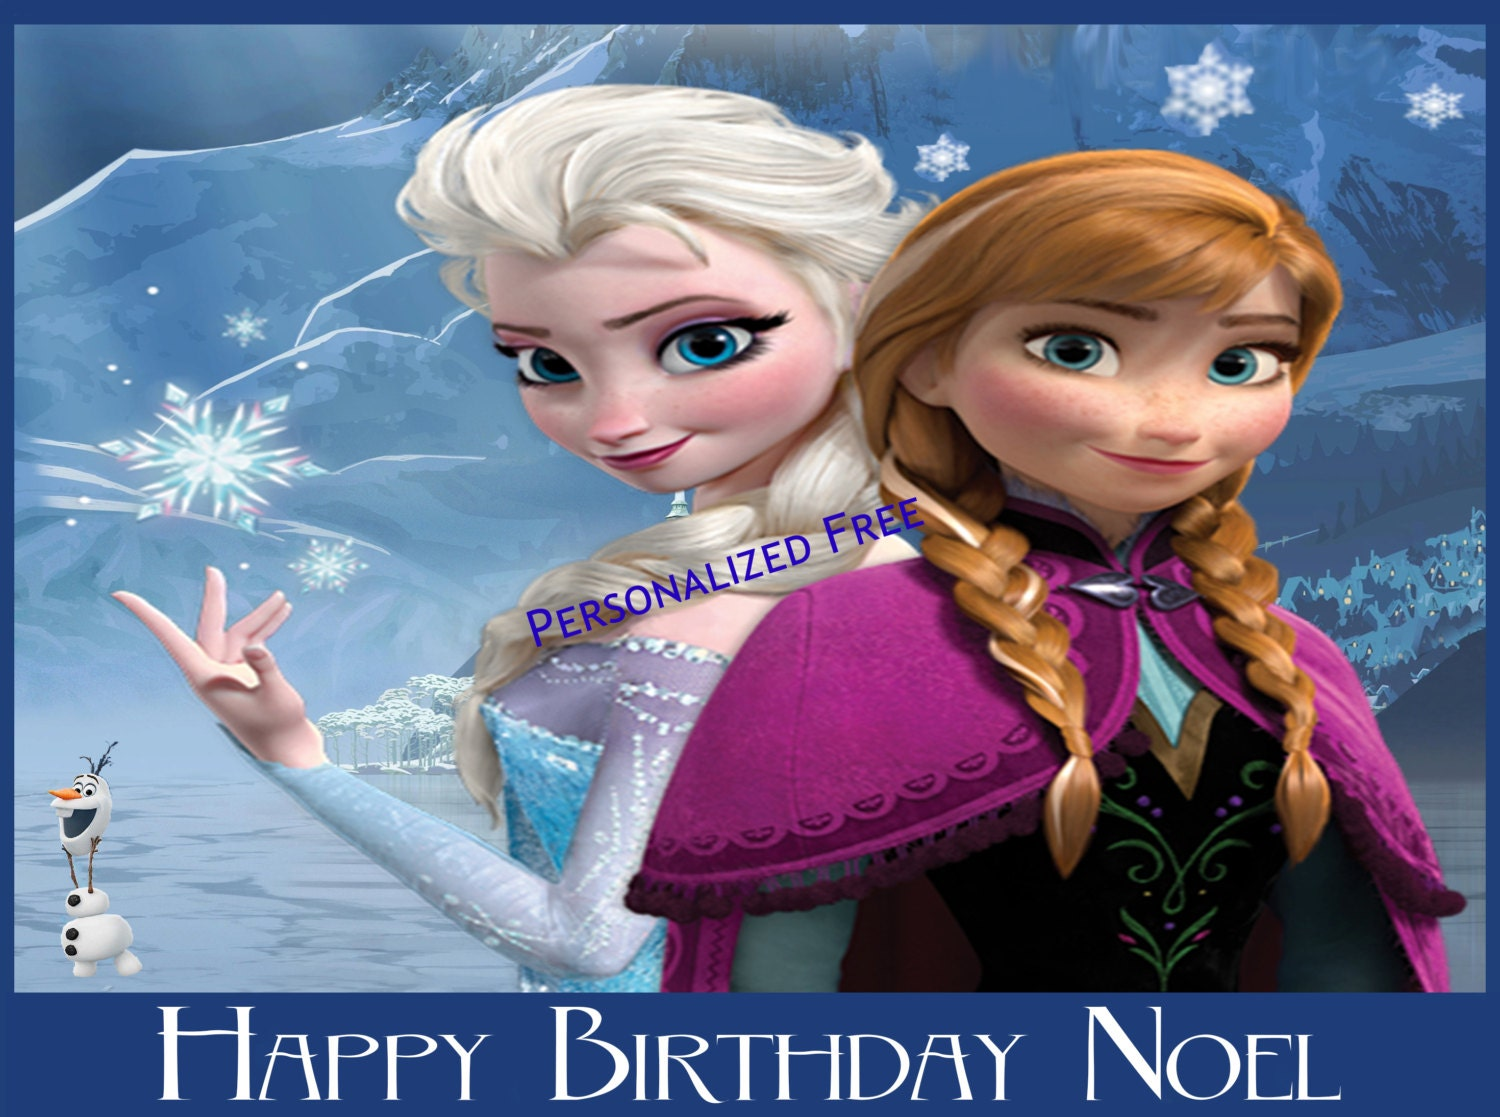 Disney frozen birthday party cake topper decoration edible image